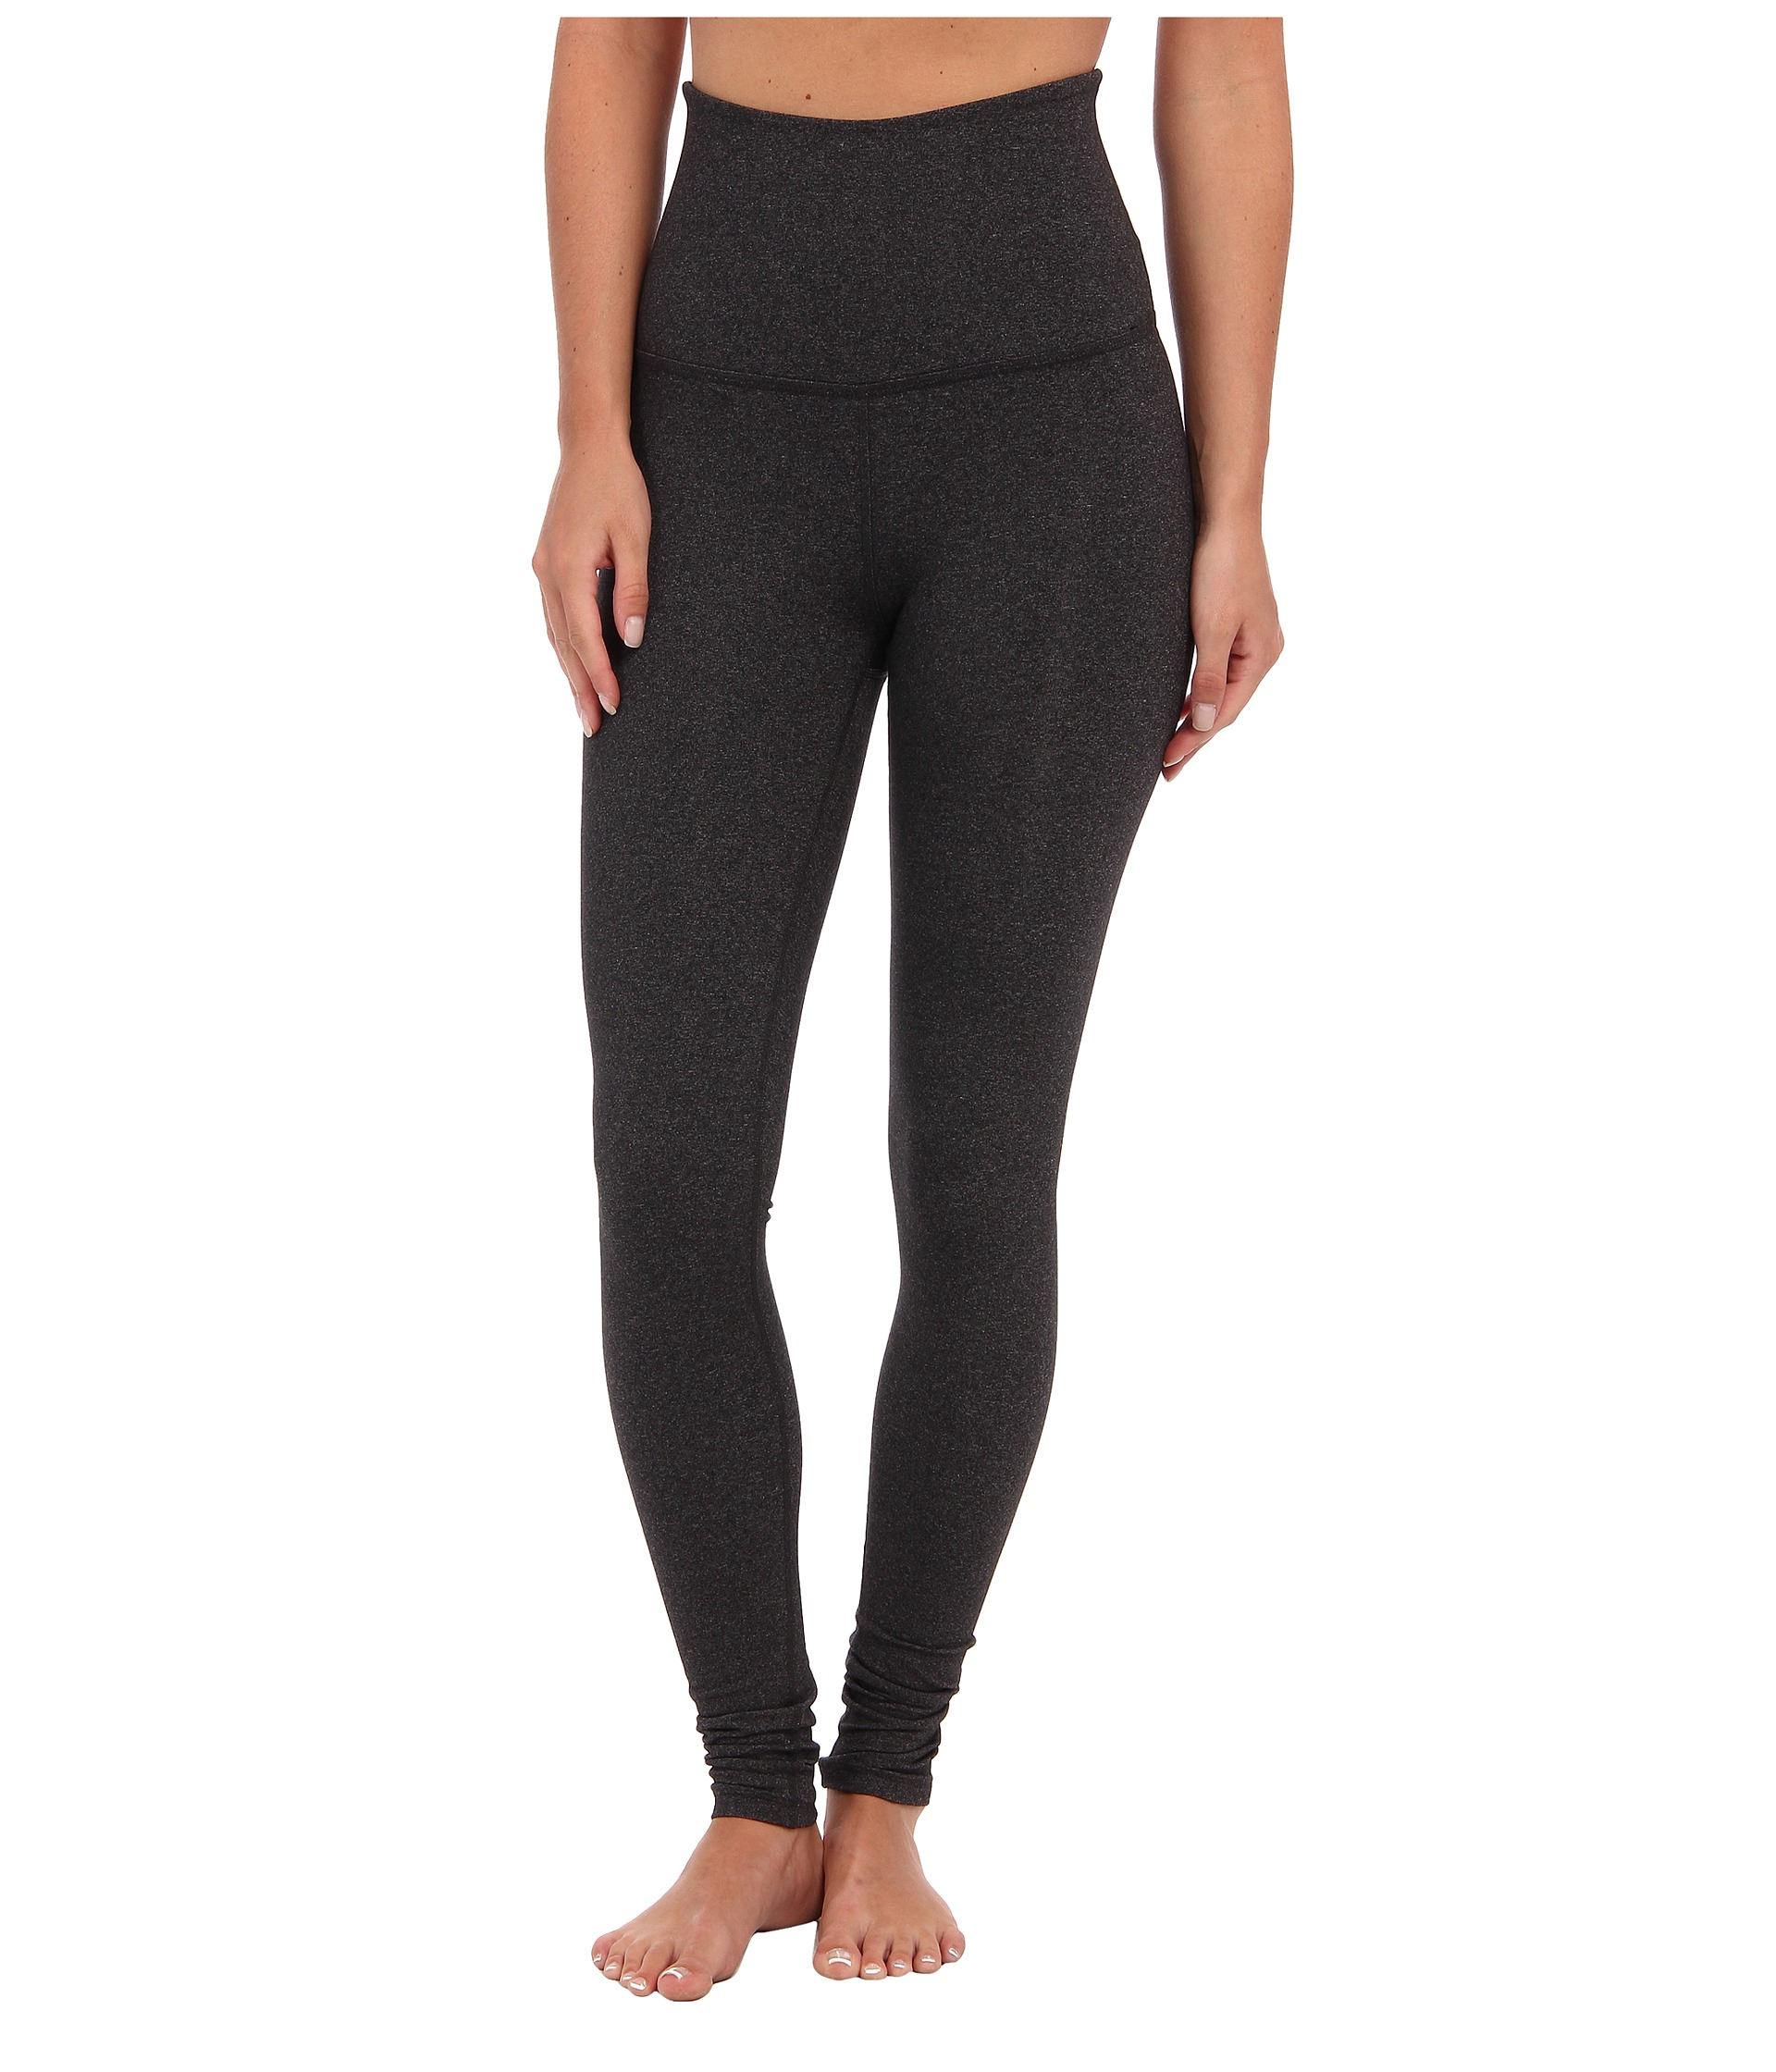 High Waisted Yoga Capris - The Else